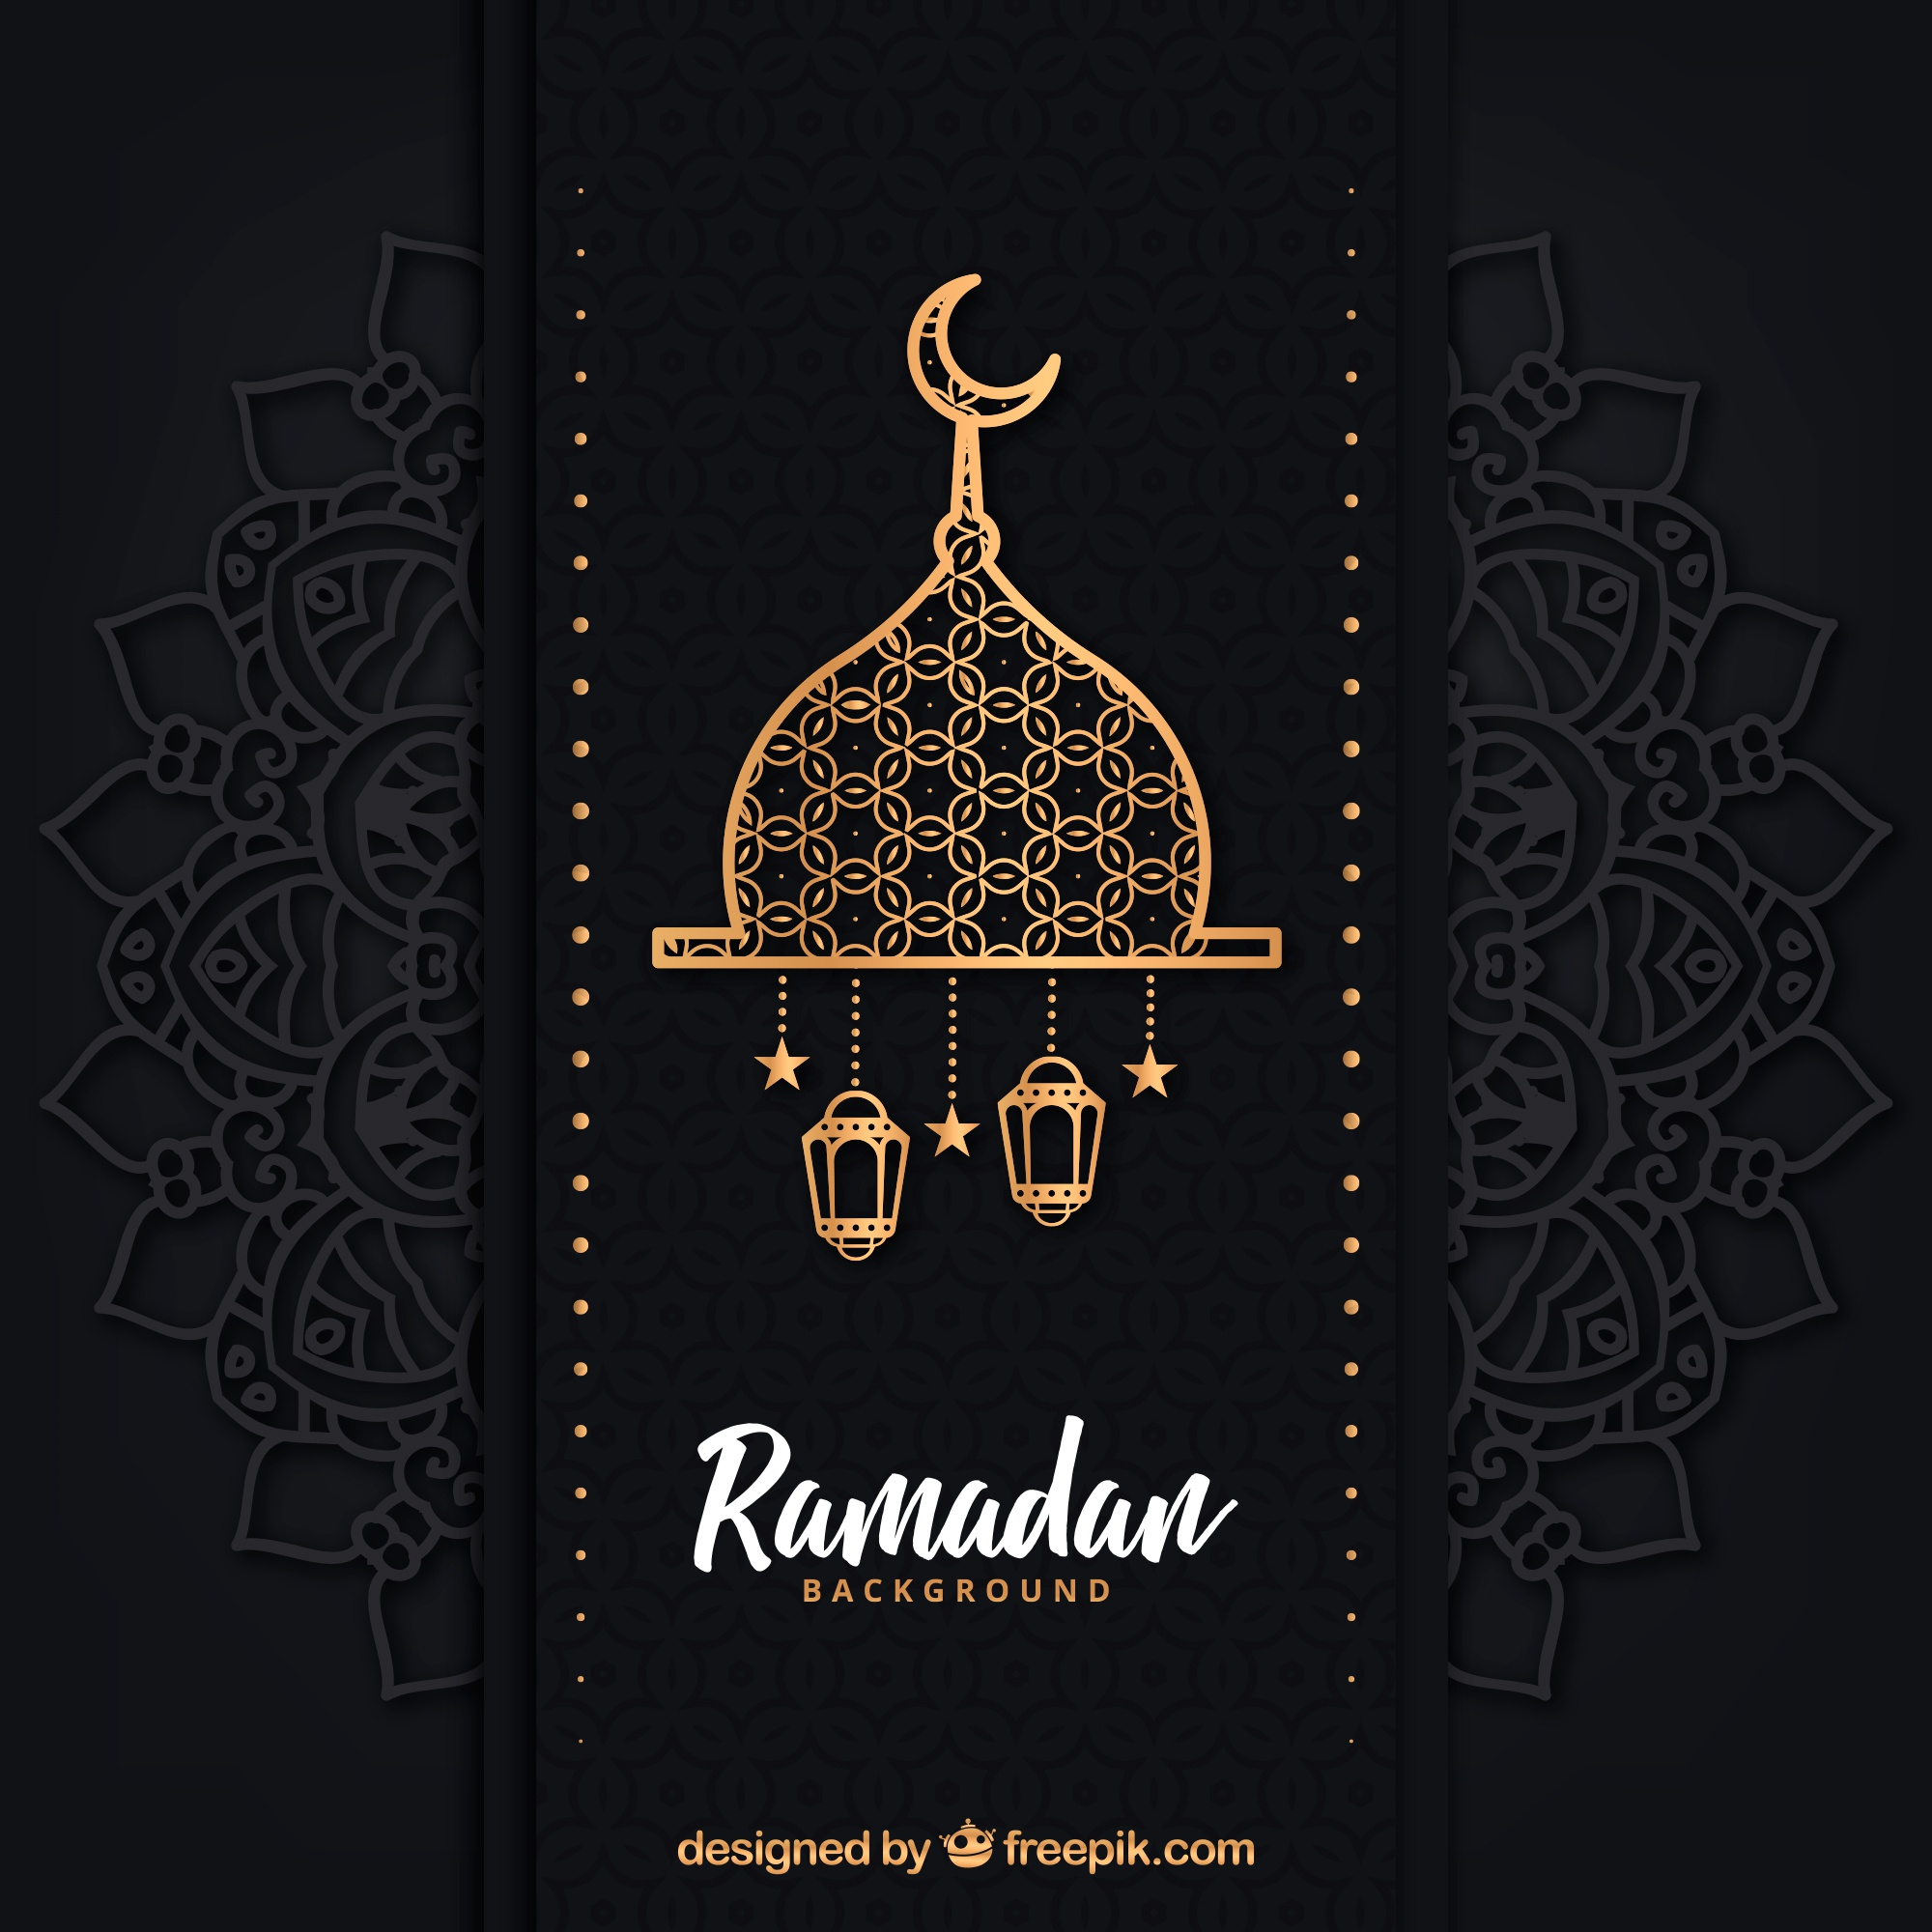 Ramadan background with different lamps